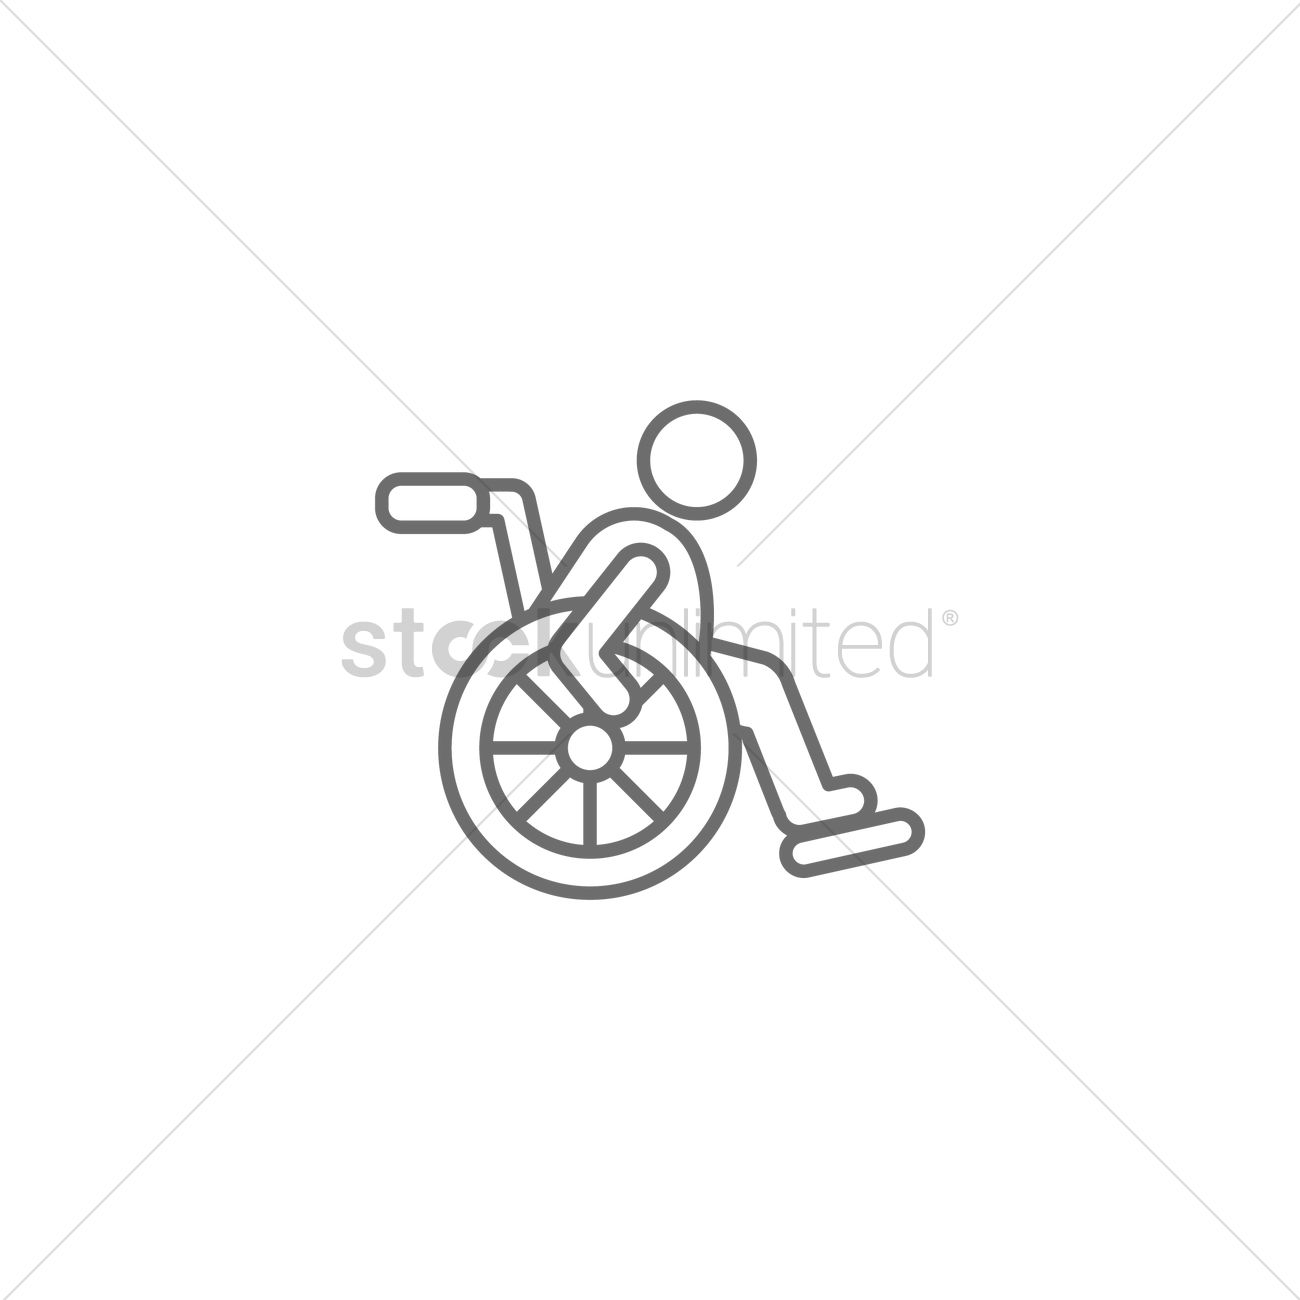 Disabled Person Icon Vector Image 1956769 Stockunlimited